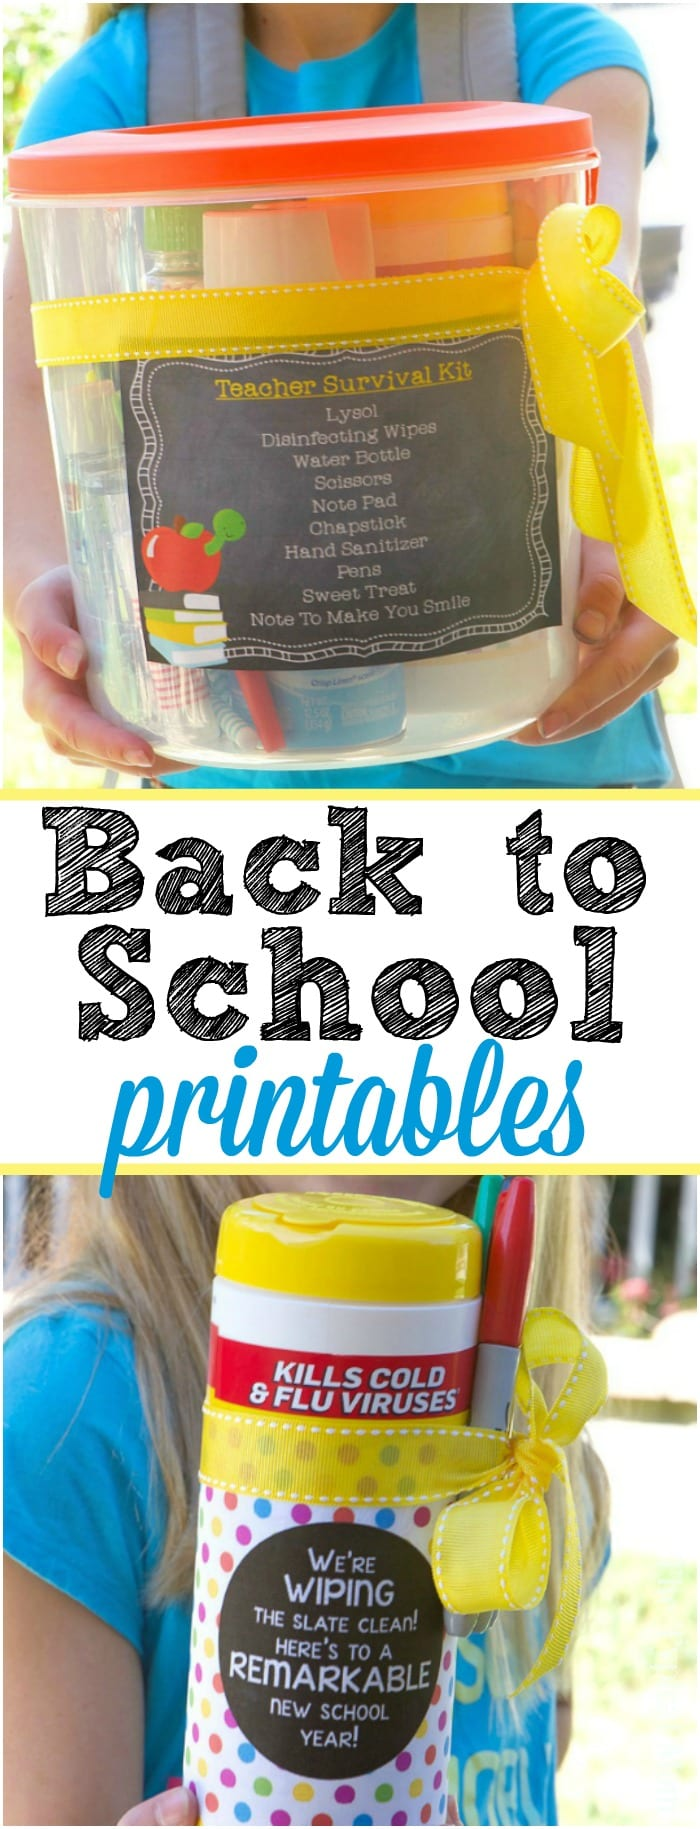 Summer is over and it's time to put together this Back to School Teacher Survival Kit! Here's the free printable and list of things they will all need.